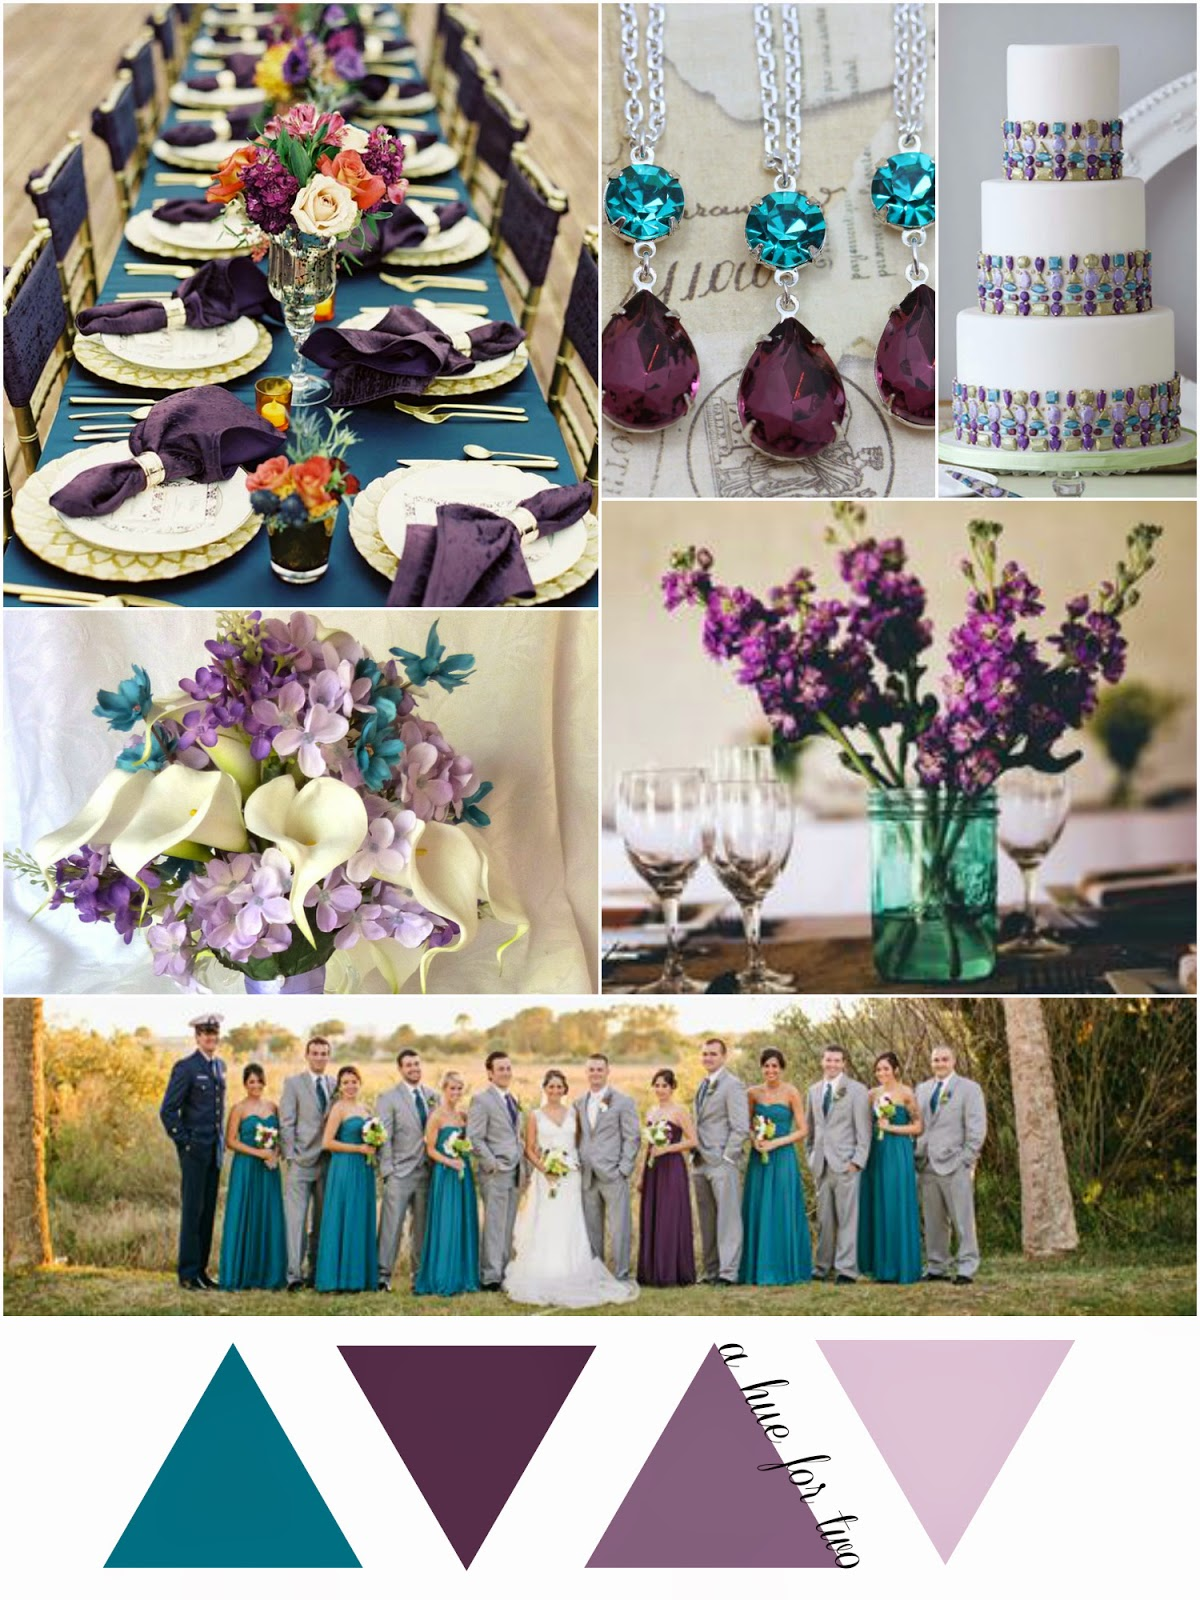 Teal, Eggplant and Lavender Early Fall Wedding   A Hue For Two